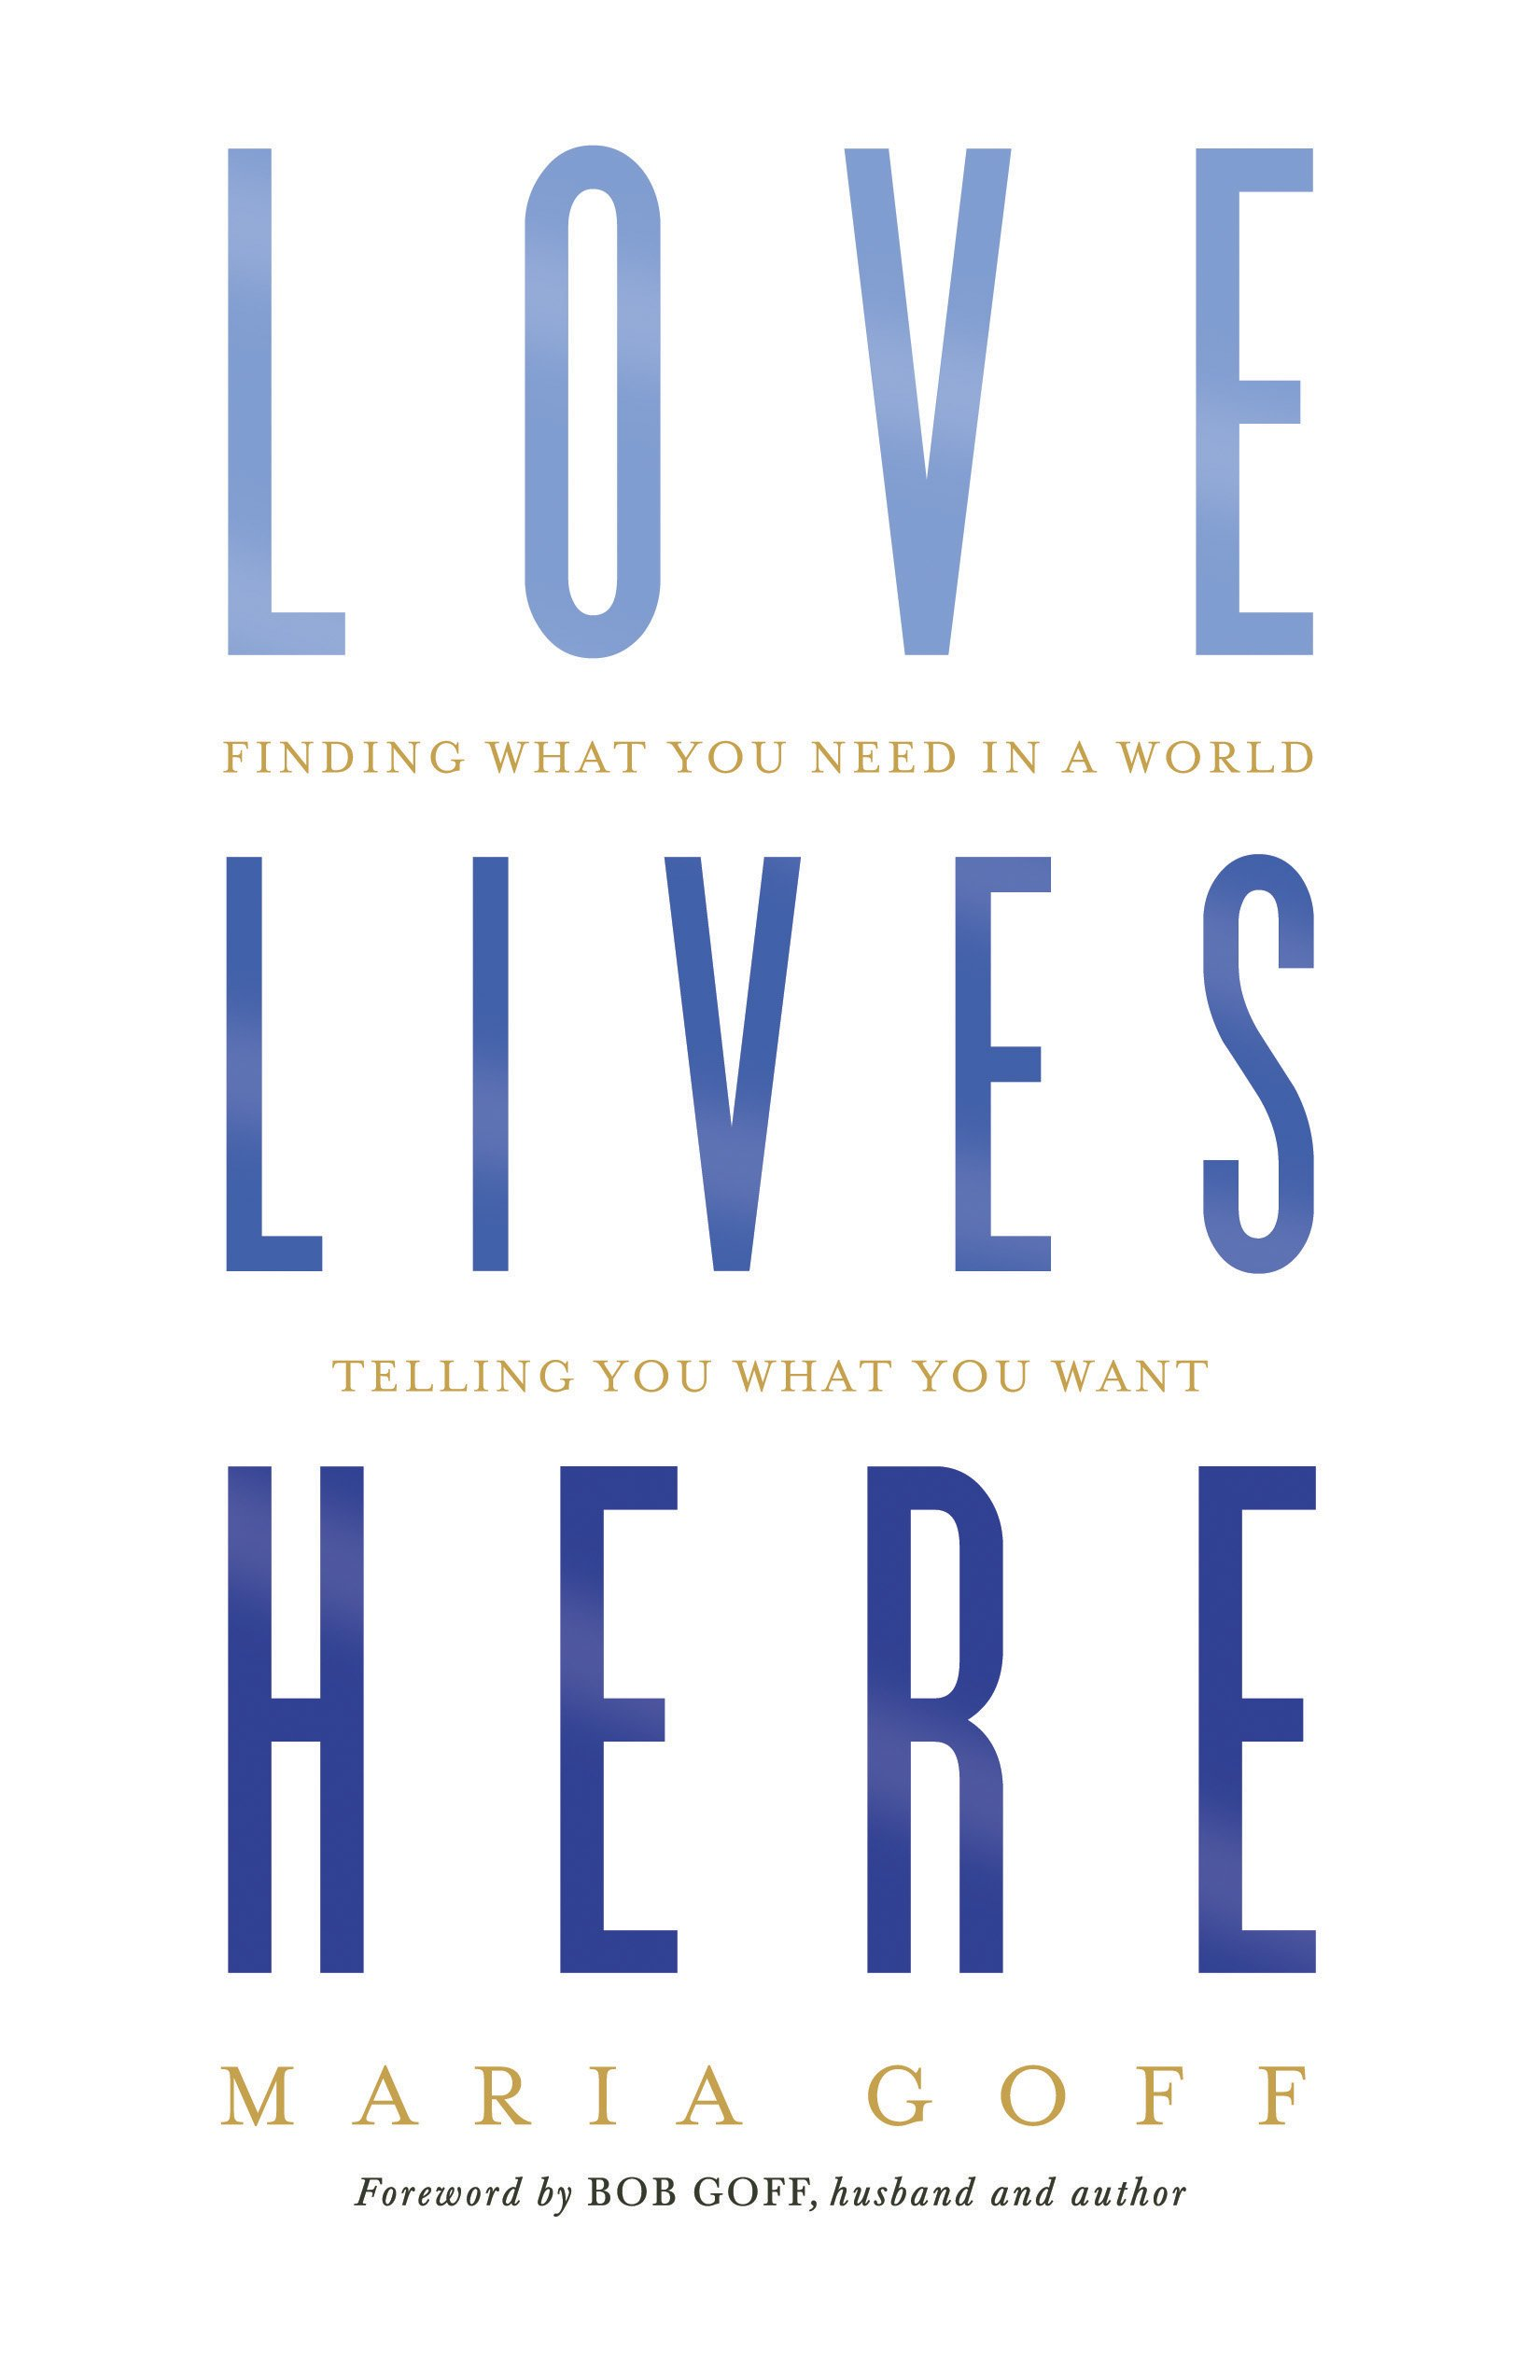 Love lives here finding what you need in a world telling you what love lives here finding what you need in a world telling you what you want maria goff 9781433648915 amazon books fandeluxe Choice Image